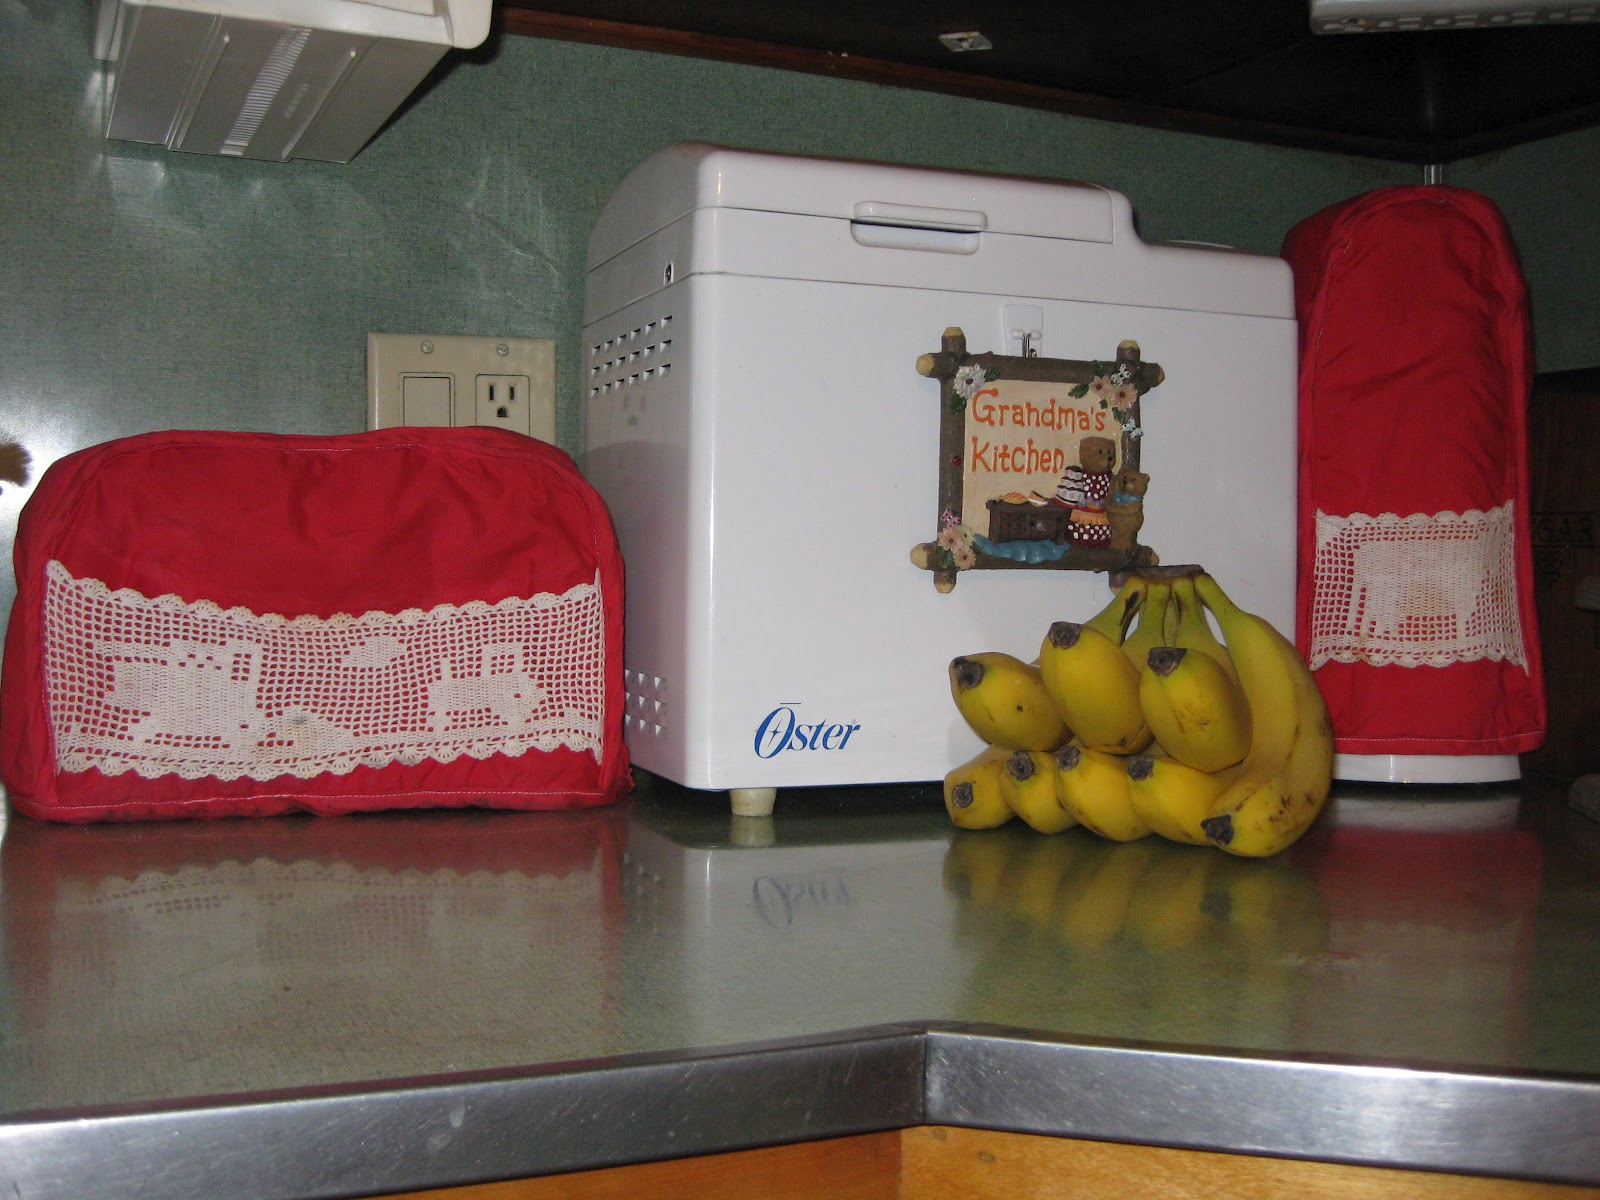 Uncategorized Small Kitchen Appliance Covers kitchen appliances appliance covers appliances